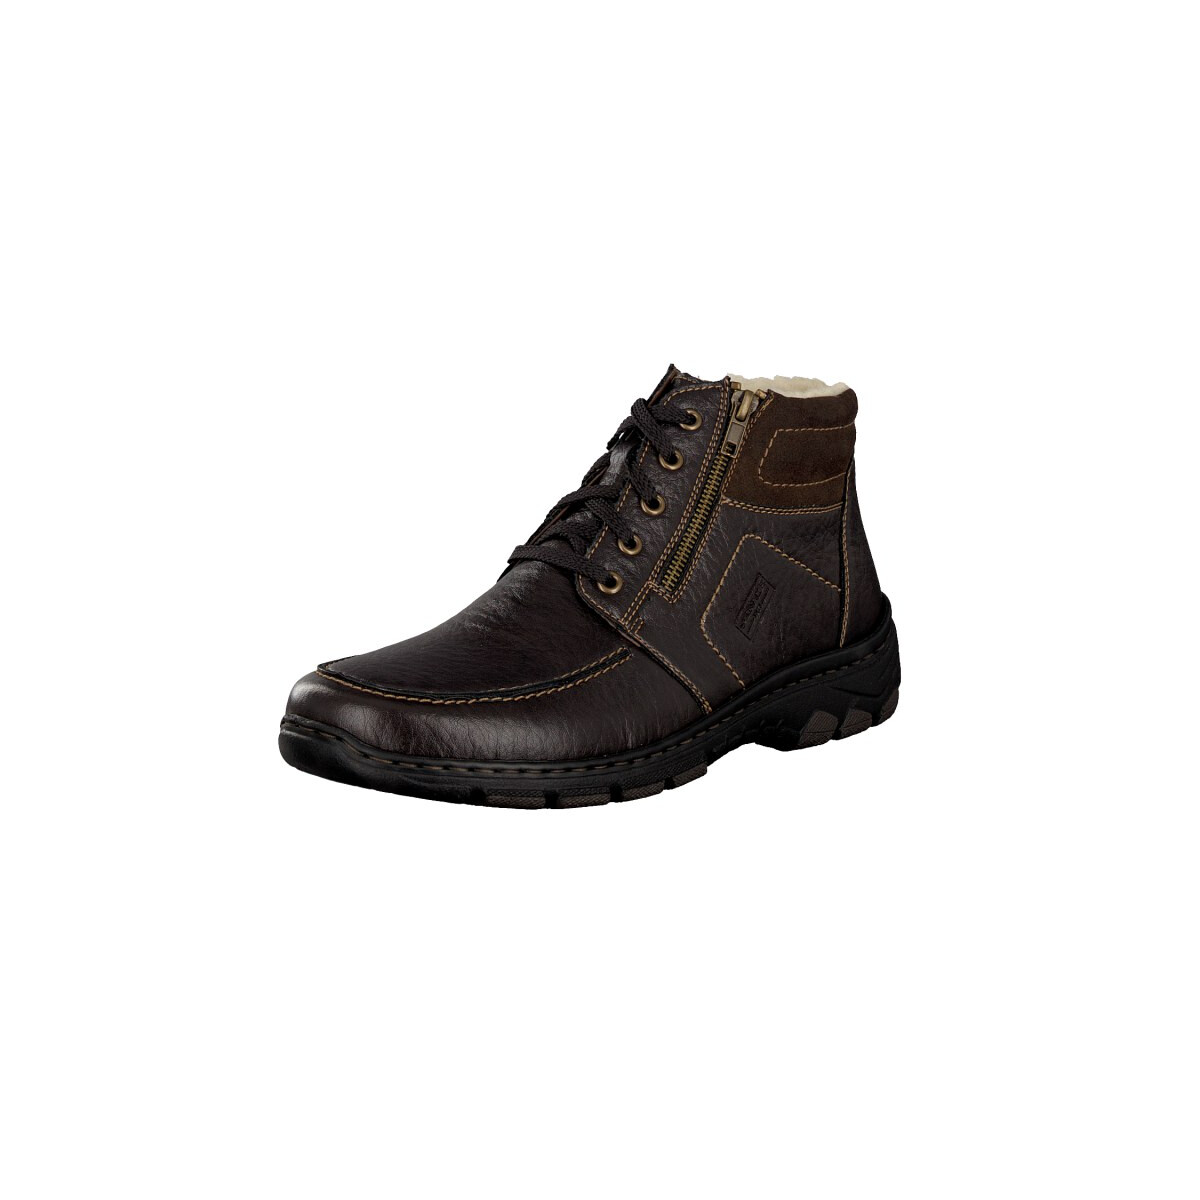 rieker lace up boot brown 39934 25